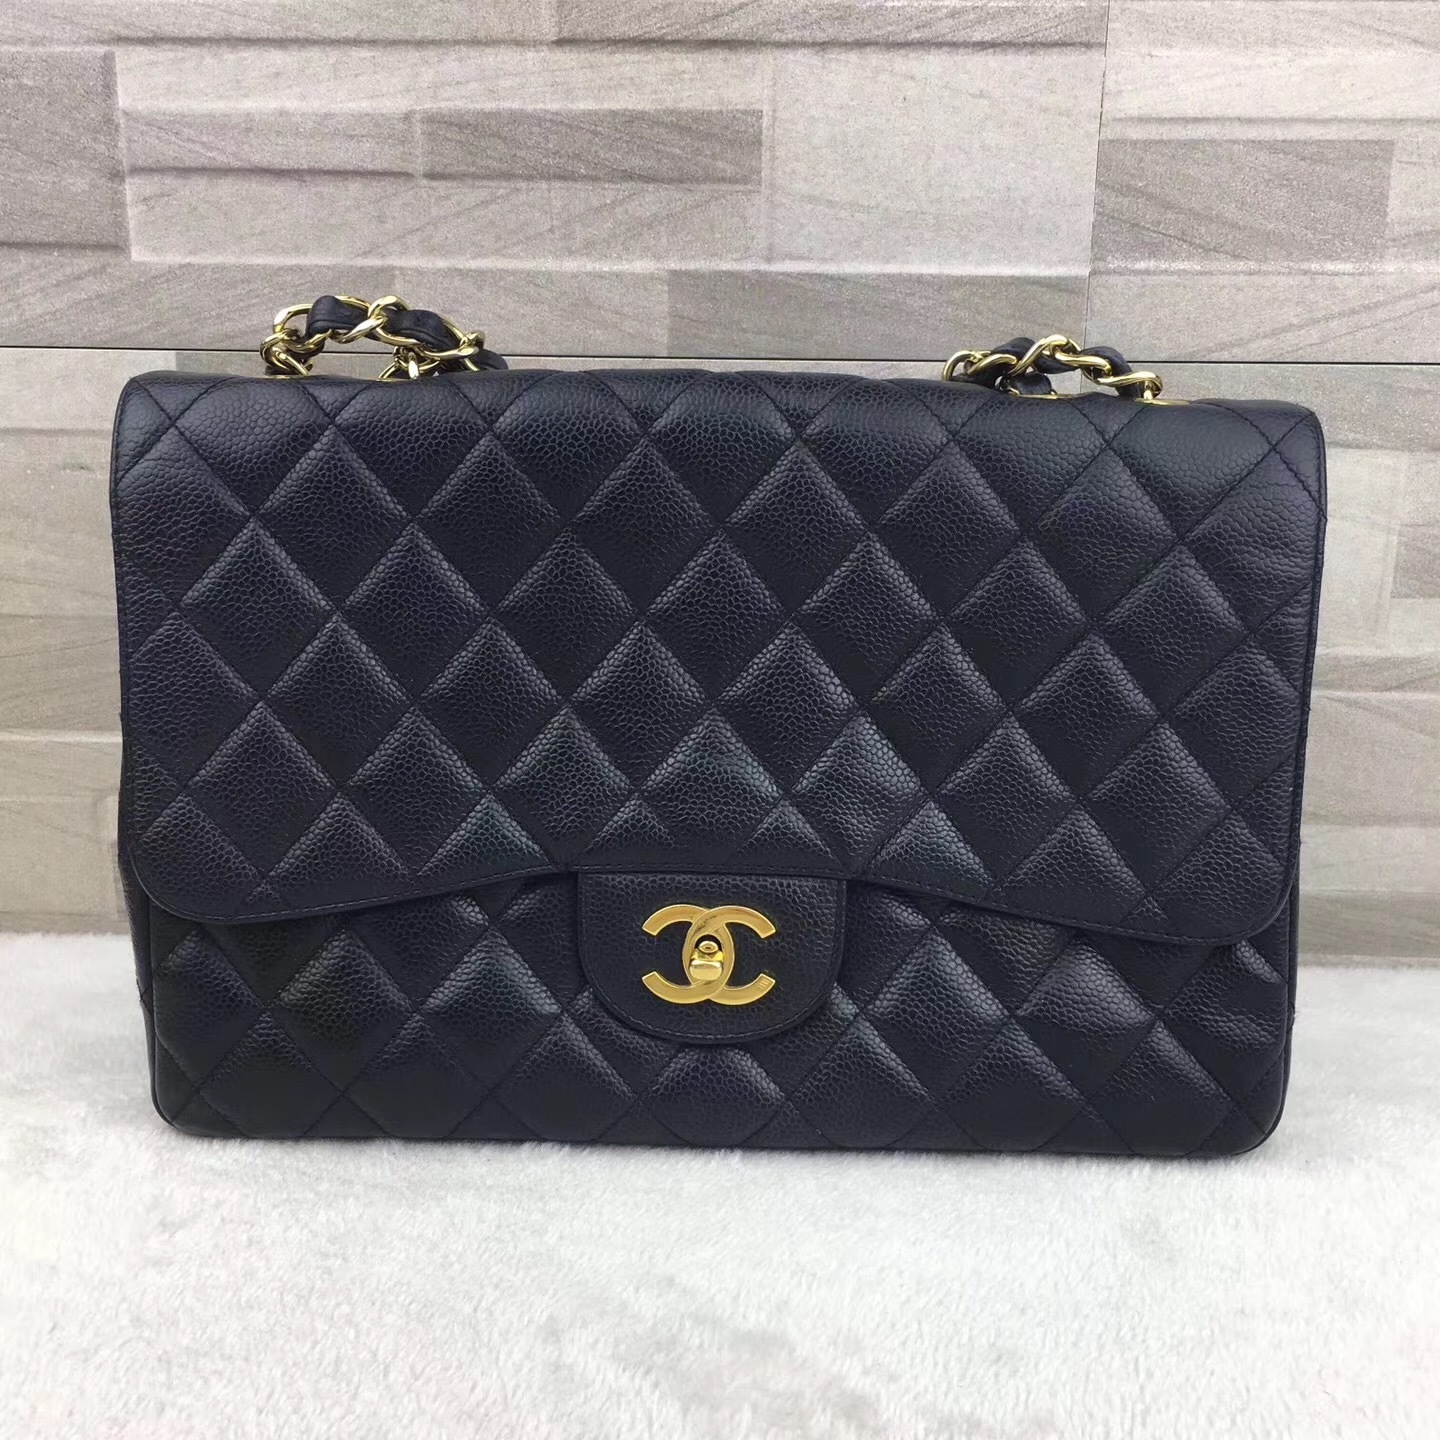 a658755b1d36 AUTHENTIC CHANEL BLACK QUILTED CAVIAR JUMBO CLASSIC FLAP BAG ...